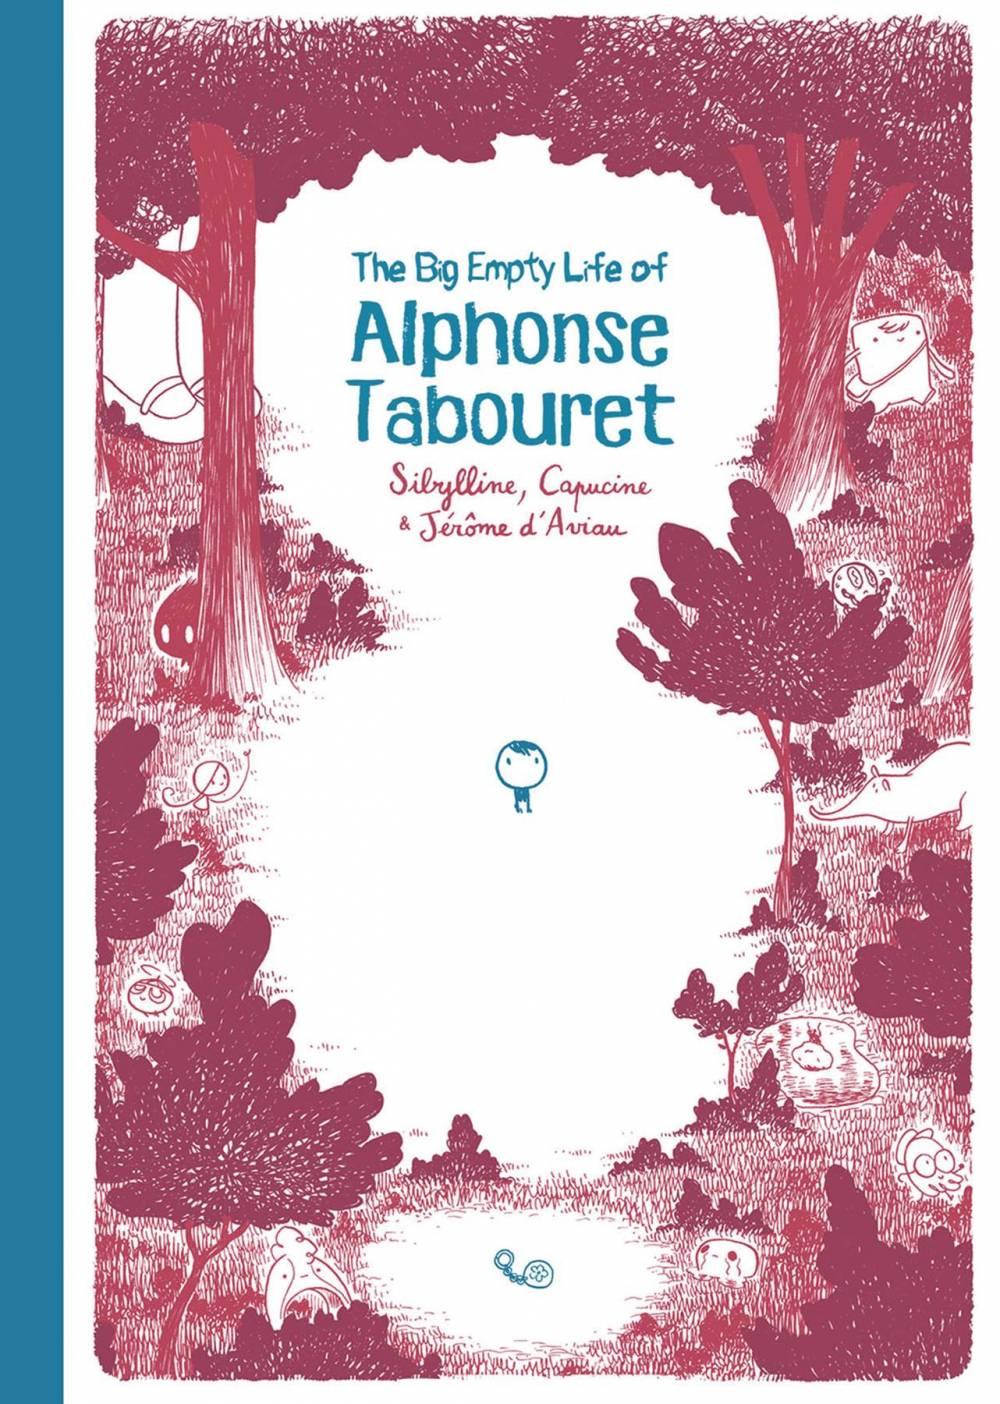 The Big Empty Life Of Alphonse Tabouret Wow Cool